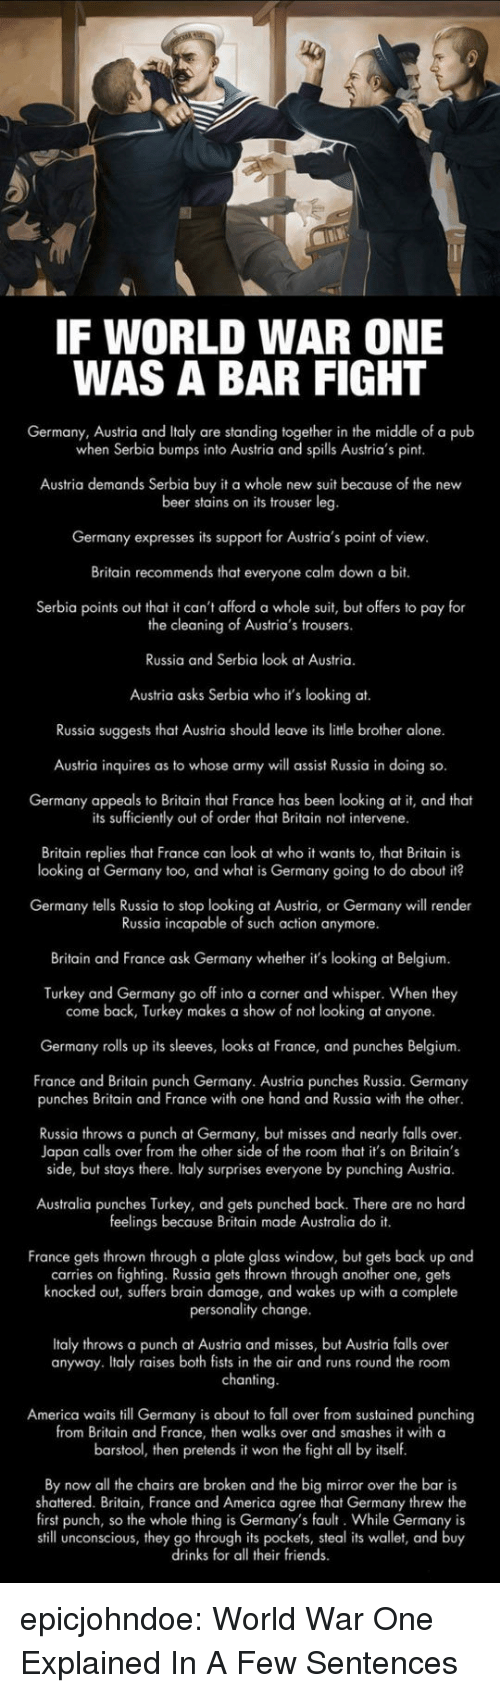 shattered: IF WORLD WAR ONE  WAS A BAR FIGHT  Germany, Austria and Italy are standing together in the middle of a pub  when Serbia bumps into Austria and spills Austria's pint  Austria demands Serbia buy it a whole new suit because of the new  beer stains on its trouser leg  Germany expresses its support for Austria's point of view  Britain recommends that everyone calm down a bit.  Serbia points out that it can't afford a whole suit, but offers to pay for  the cleaning of Austria's trousers.  Russia and Serbia look at Austria.  Austria asks Serbia who it's looking at.  Russia suggests that Austria should leave its litle brother alone.  Austria inquires as to whose army will assist Russia in doing so.  Germany appeals to Britain that France has been looking at it, and theat  its sufficiently out of order that Britain not intervene  Britain replies that France can look at who it wants to, that Britain is  looking at Germany too, and what is Germany going to do about it?  Germany tells Russia to stop looking at Austria, or Germany will render  Russia incapable of such action anymore.  Britain and France ask Germany whether it's looking at Belgium  Turkey and Germany go off into a corner and whisper. When they  come back, Turkey makes a show of not looking at anyone.  Germany rolls up its sleeves, looks at France, and punches Belgium.  France and Britain punch Germany. Austria punches Russia. Germany  punches Britain and France with one hand and Russia with the other  Russia throws a punch at Germany, but misses and nearly falls over  Japan calls over from the other side of the room that it's on Britain's  side, but stays there. Italy surprises everyone by punching Austria.  Australia punches Turkey, and gets punched back. There are no hard  feelings because Britain made Australia do it.  France gets thrown through a plate glass window, but gets back up and  carries on fighting. Russia gets thrown through another one, gets  knocked out, suffers brain damage, and wakes up with a complete  personality change  Italy throws a punch at Austria and misses, but Austria falls over  anyway. Italy raises both fists in the air and runs round the room  chanting  America waits till Germany is about to fall over from sustained punching  from Britain and France, then walks over and smashes it with a  barstool, then pretends it won the fight all by itself  By now all the chairs are broken and the big mirror over the bar is  shattered. Britain, France and America agree that Germany threw the  first punch, so the whole thing is Germany's fault. While Germany is  still unconscious, they go through its pockets, steal its wallet, and buy  drinks for all their friends epicjohndoe:  World War One Explained In A Few Sentences